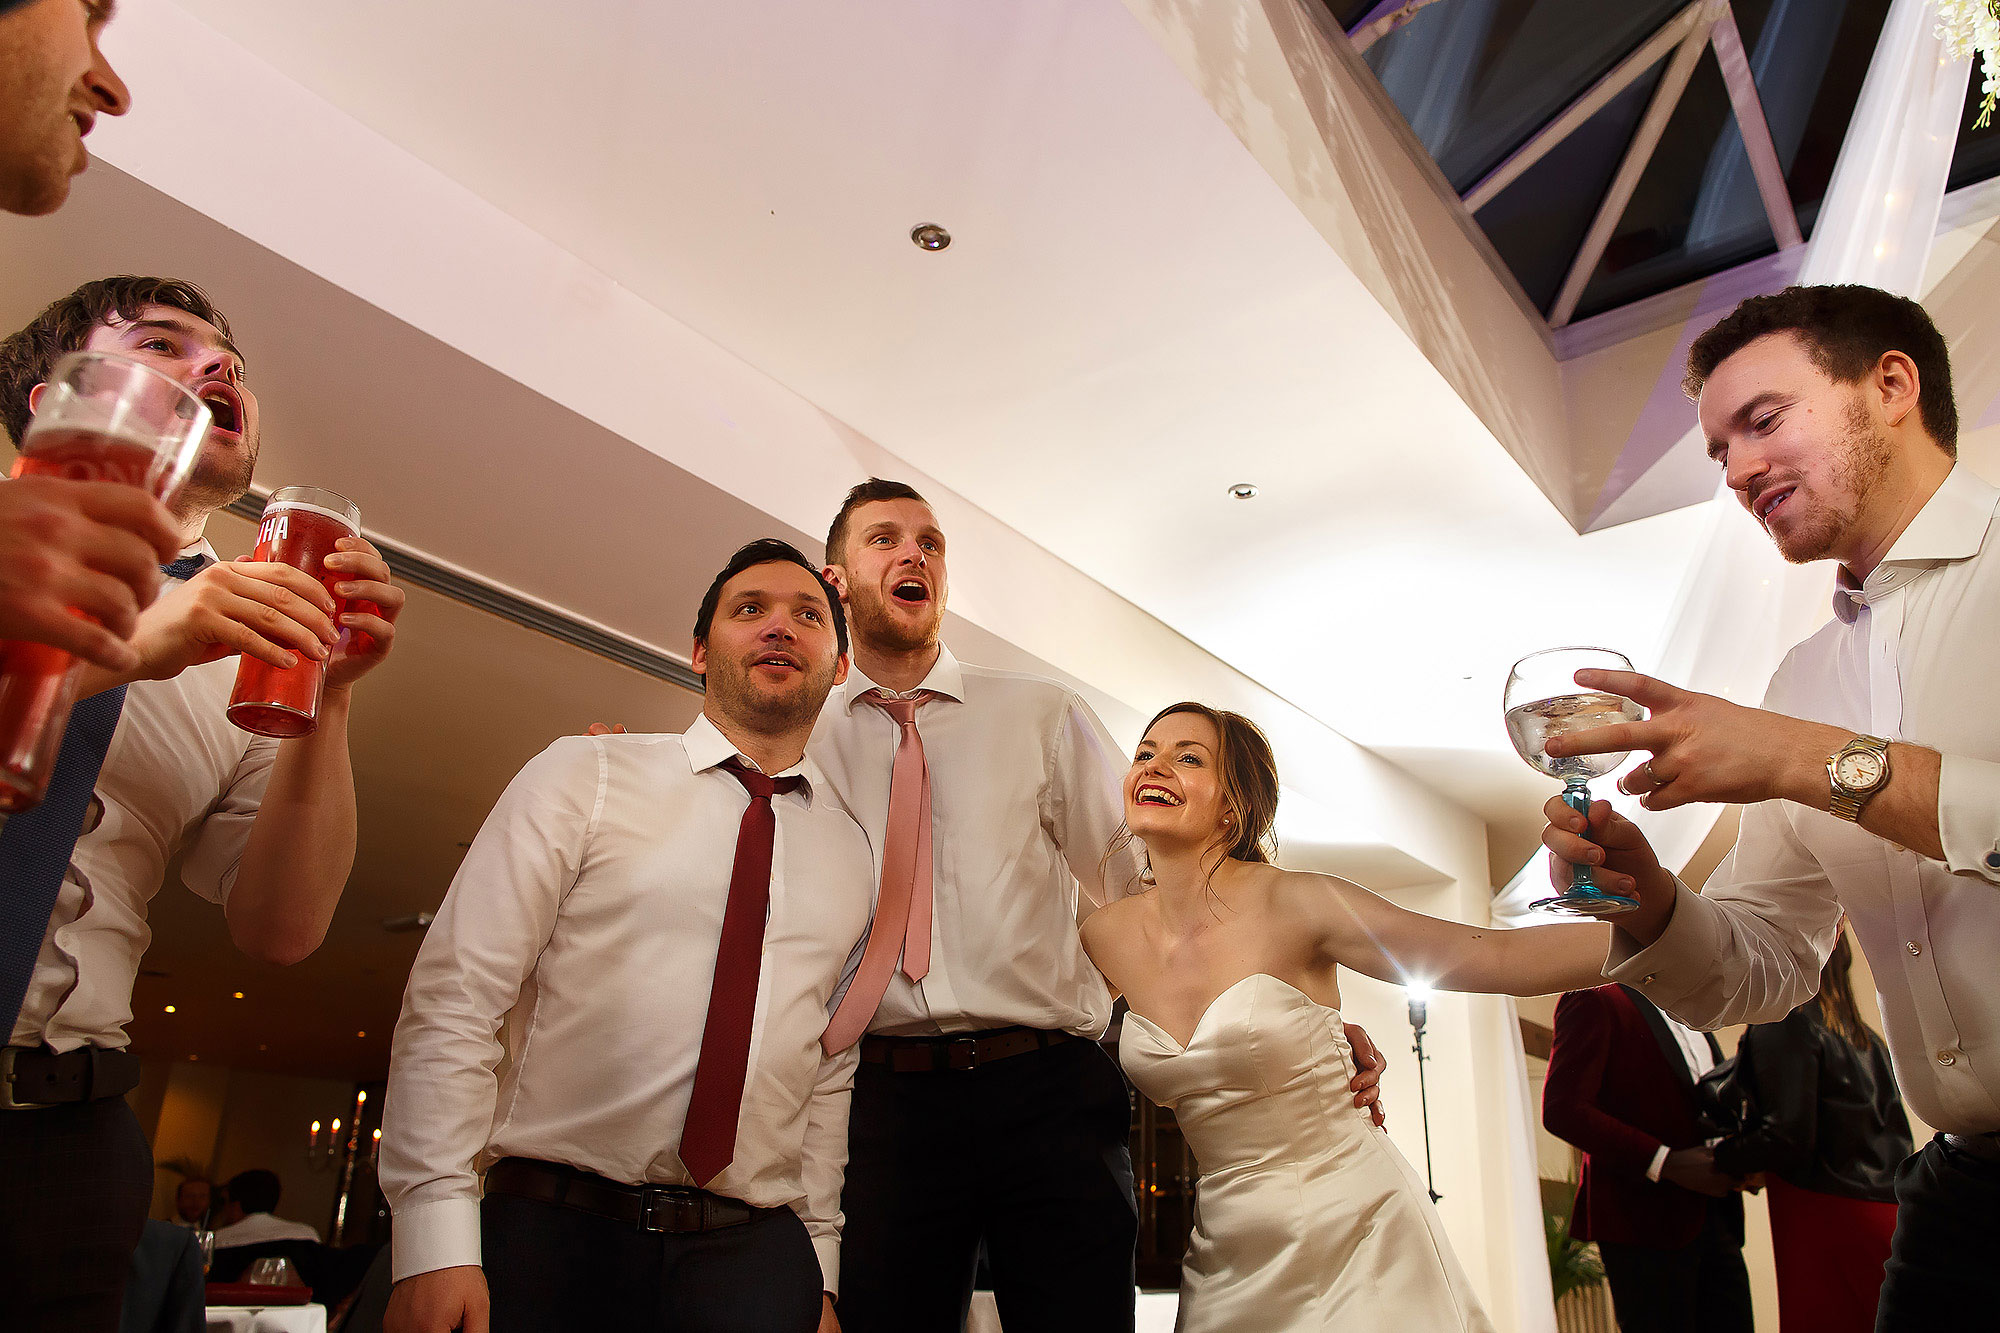 Bride on the dance floor with wedding guests | Mitton Hall wedding photographs by Toni Darcy Photography